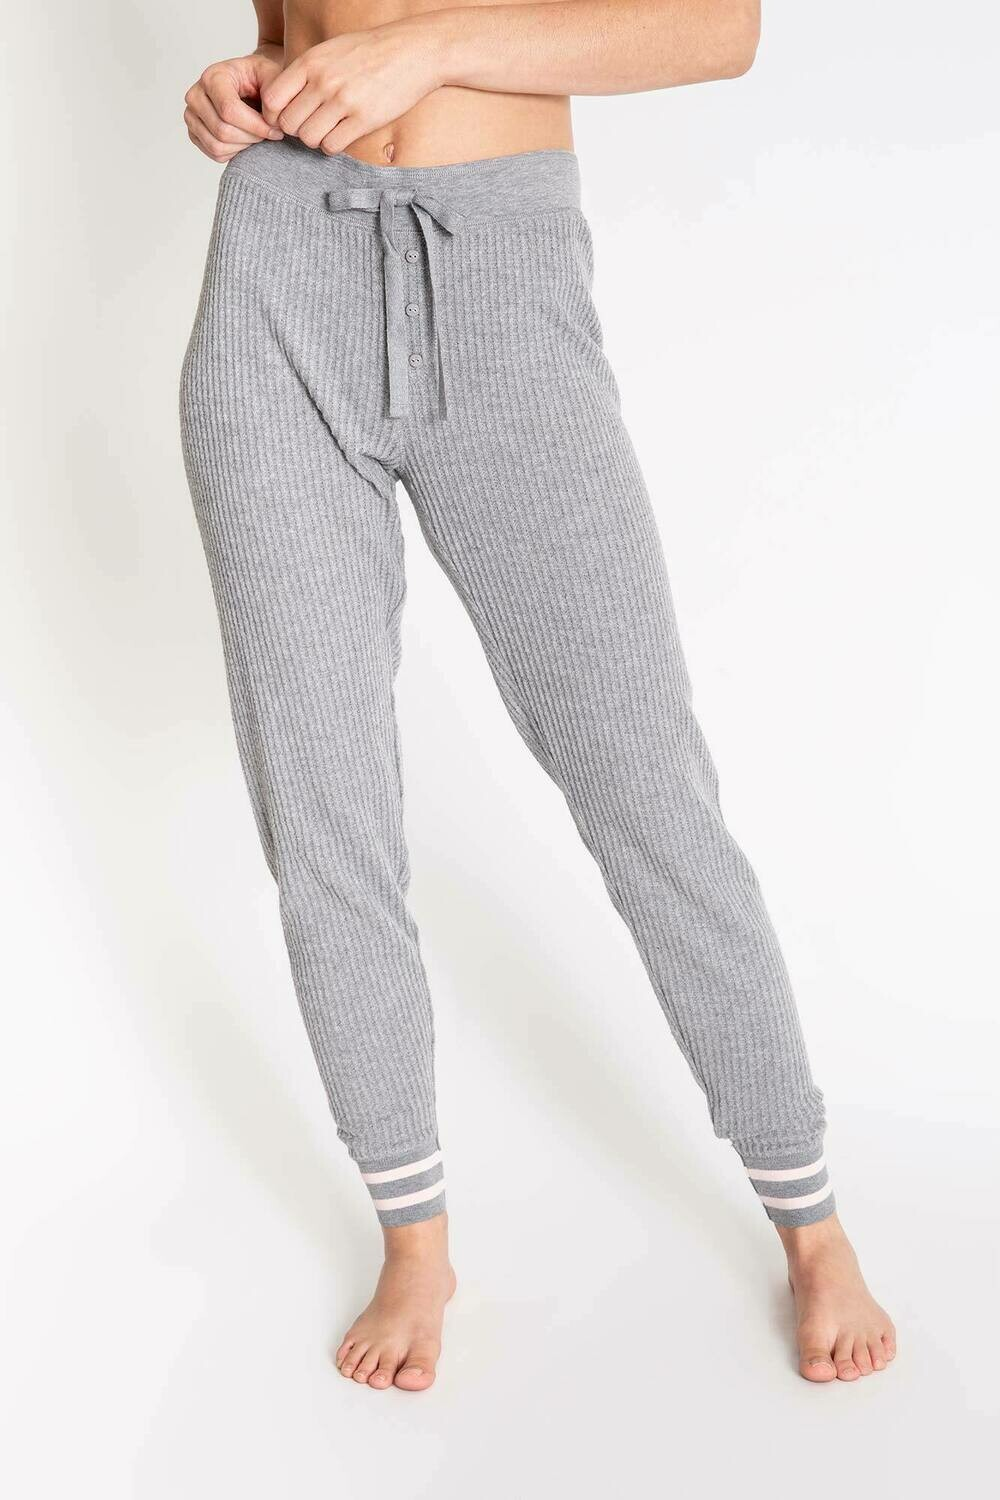 PJ Salvage Grey Cozy Draw String PJ Pant